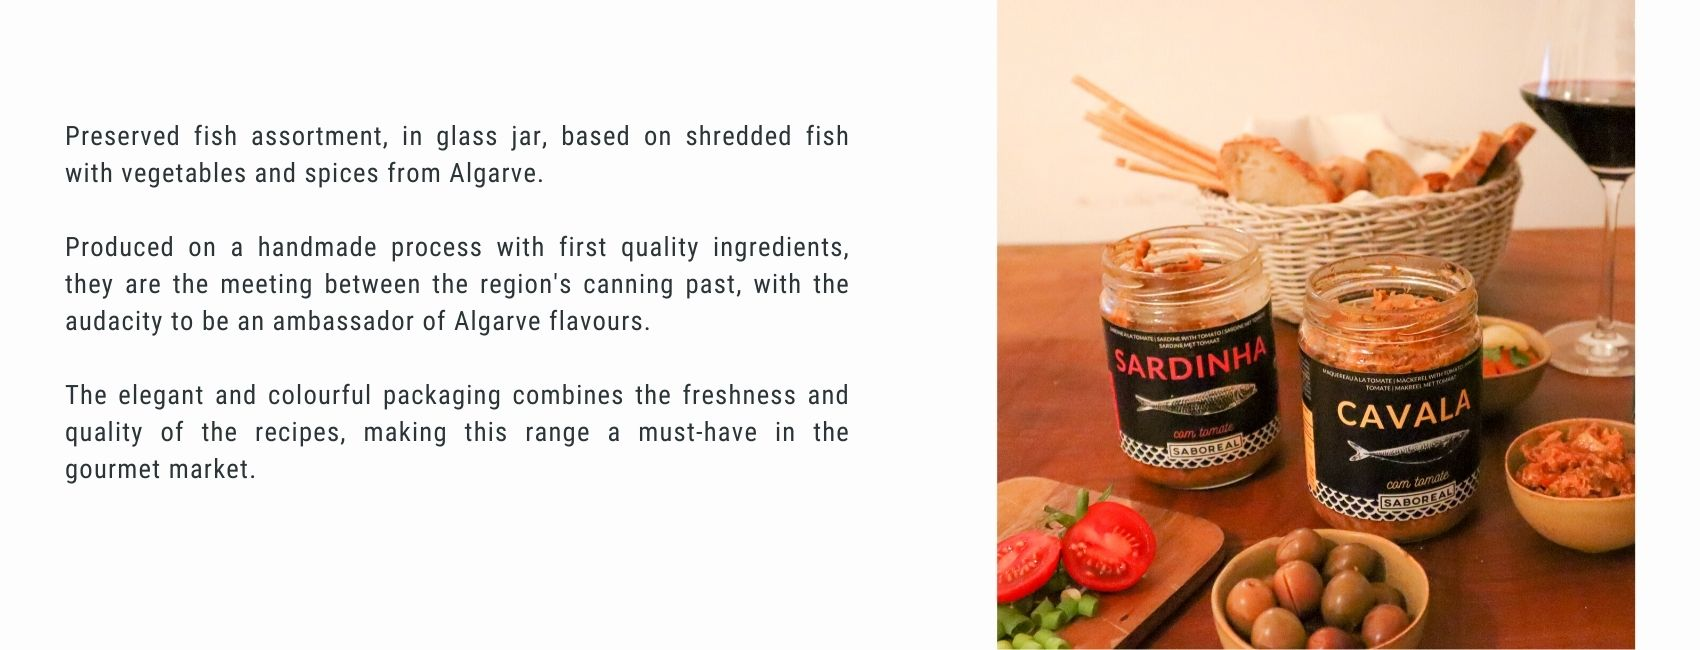 Preserved fish assortment, in glass jar, based on shredded fish with vegetables and spices from Algarve.  Produced on a handmade process with first quality ingredients, they are the meeting between the region's canning past, with the audacity to be an ambassador of Algarve flavours.  The elegant and colourful packaging combines the freshness and quality of the recipes, making this range a must-have in the gourmet market.